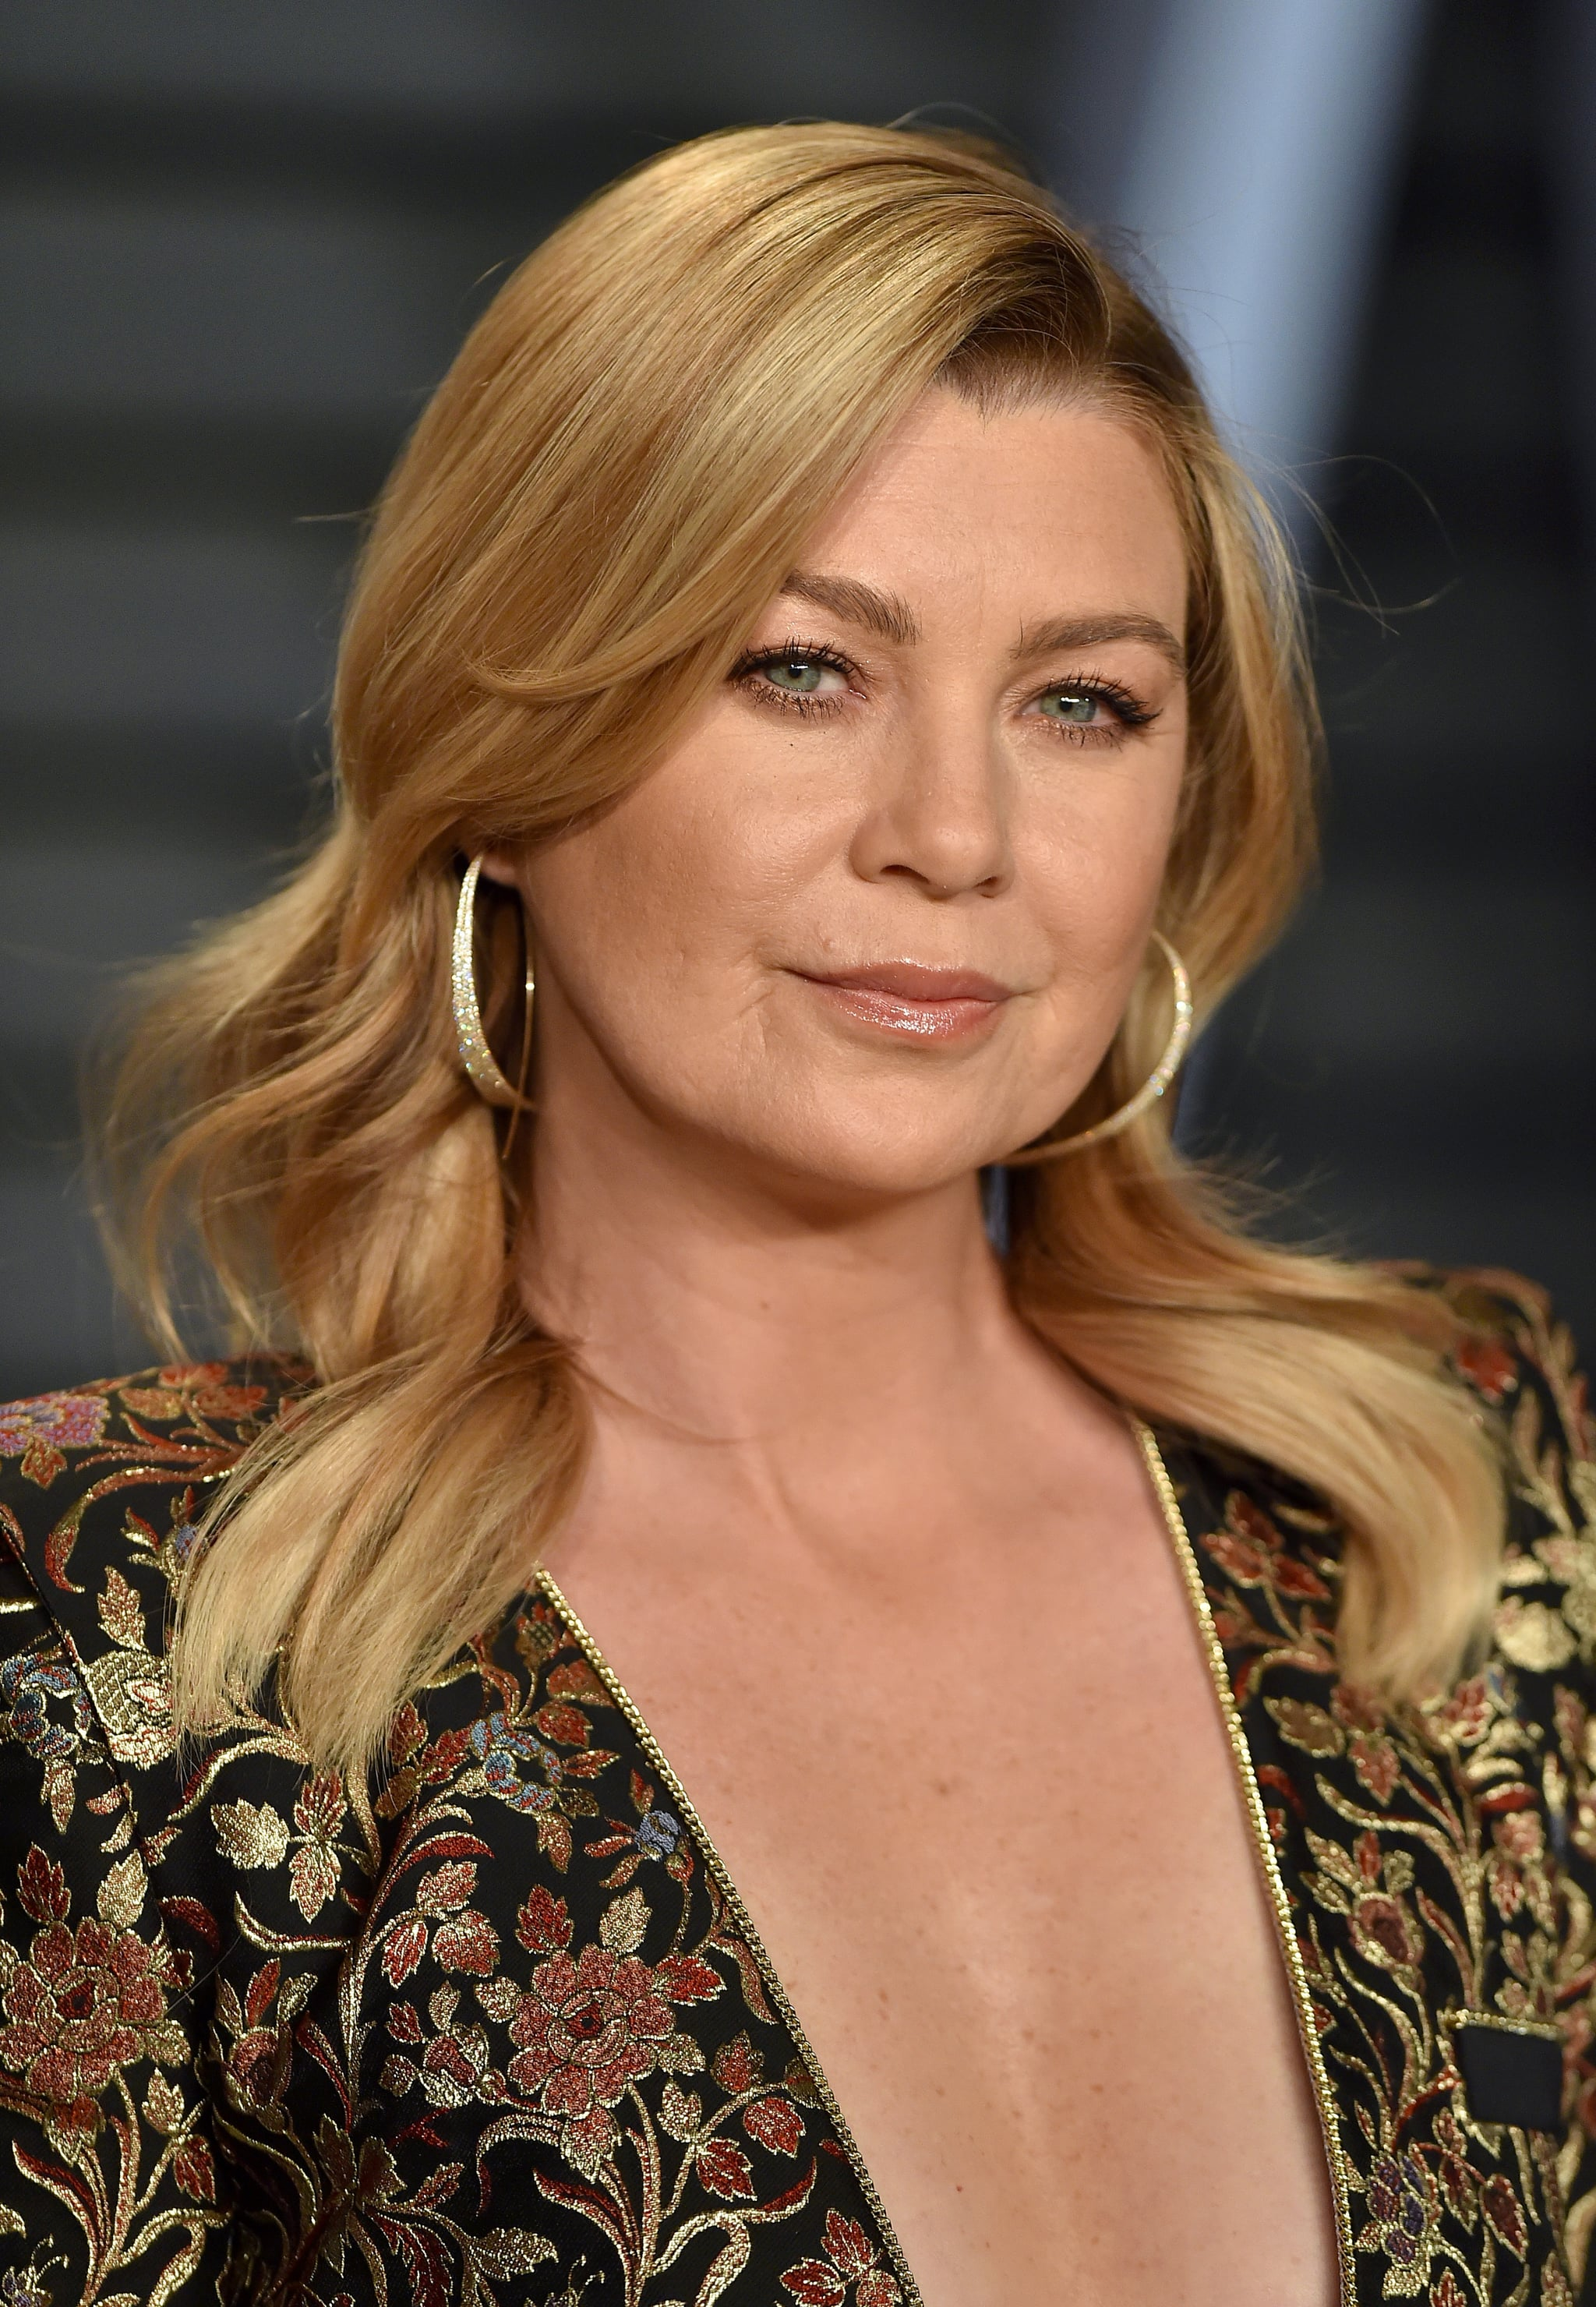 BEVERLY HILLS, CA - MARCH 04:  Actress Ellen Pompeo attends the 2018 Vanity Fair Oscar Party hosted by Radhika Jones at Wallis Annenberg Center for the Performing Arts on March 4, 2018 in Beverly Hills, California.  (Photo by Axelle/Bauer-Griffin/FilmMagic)